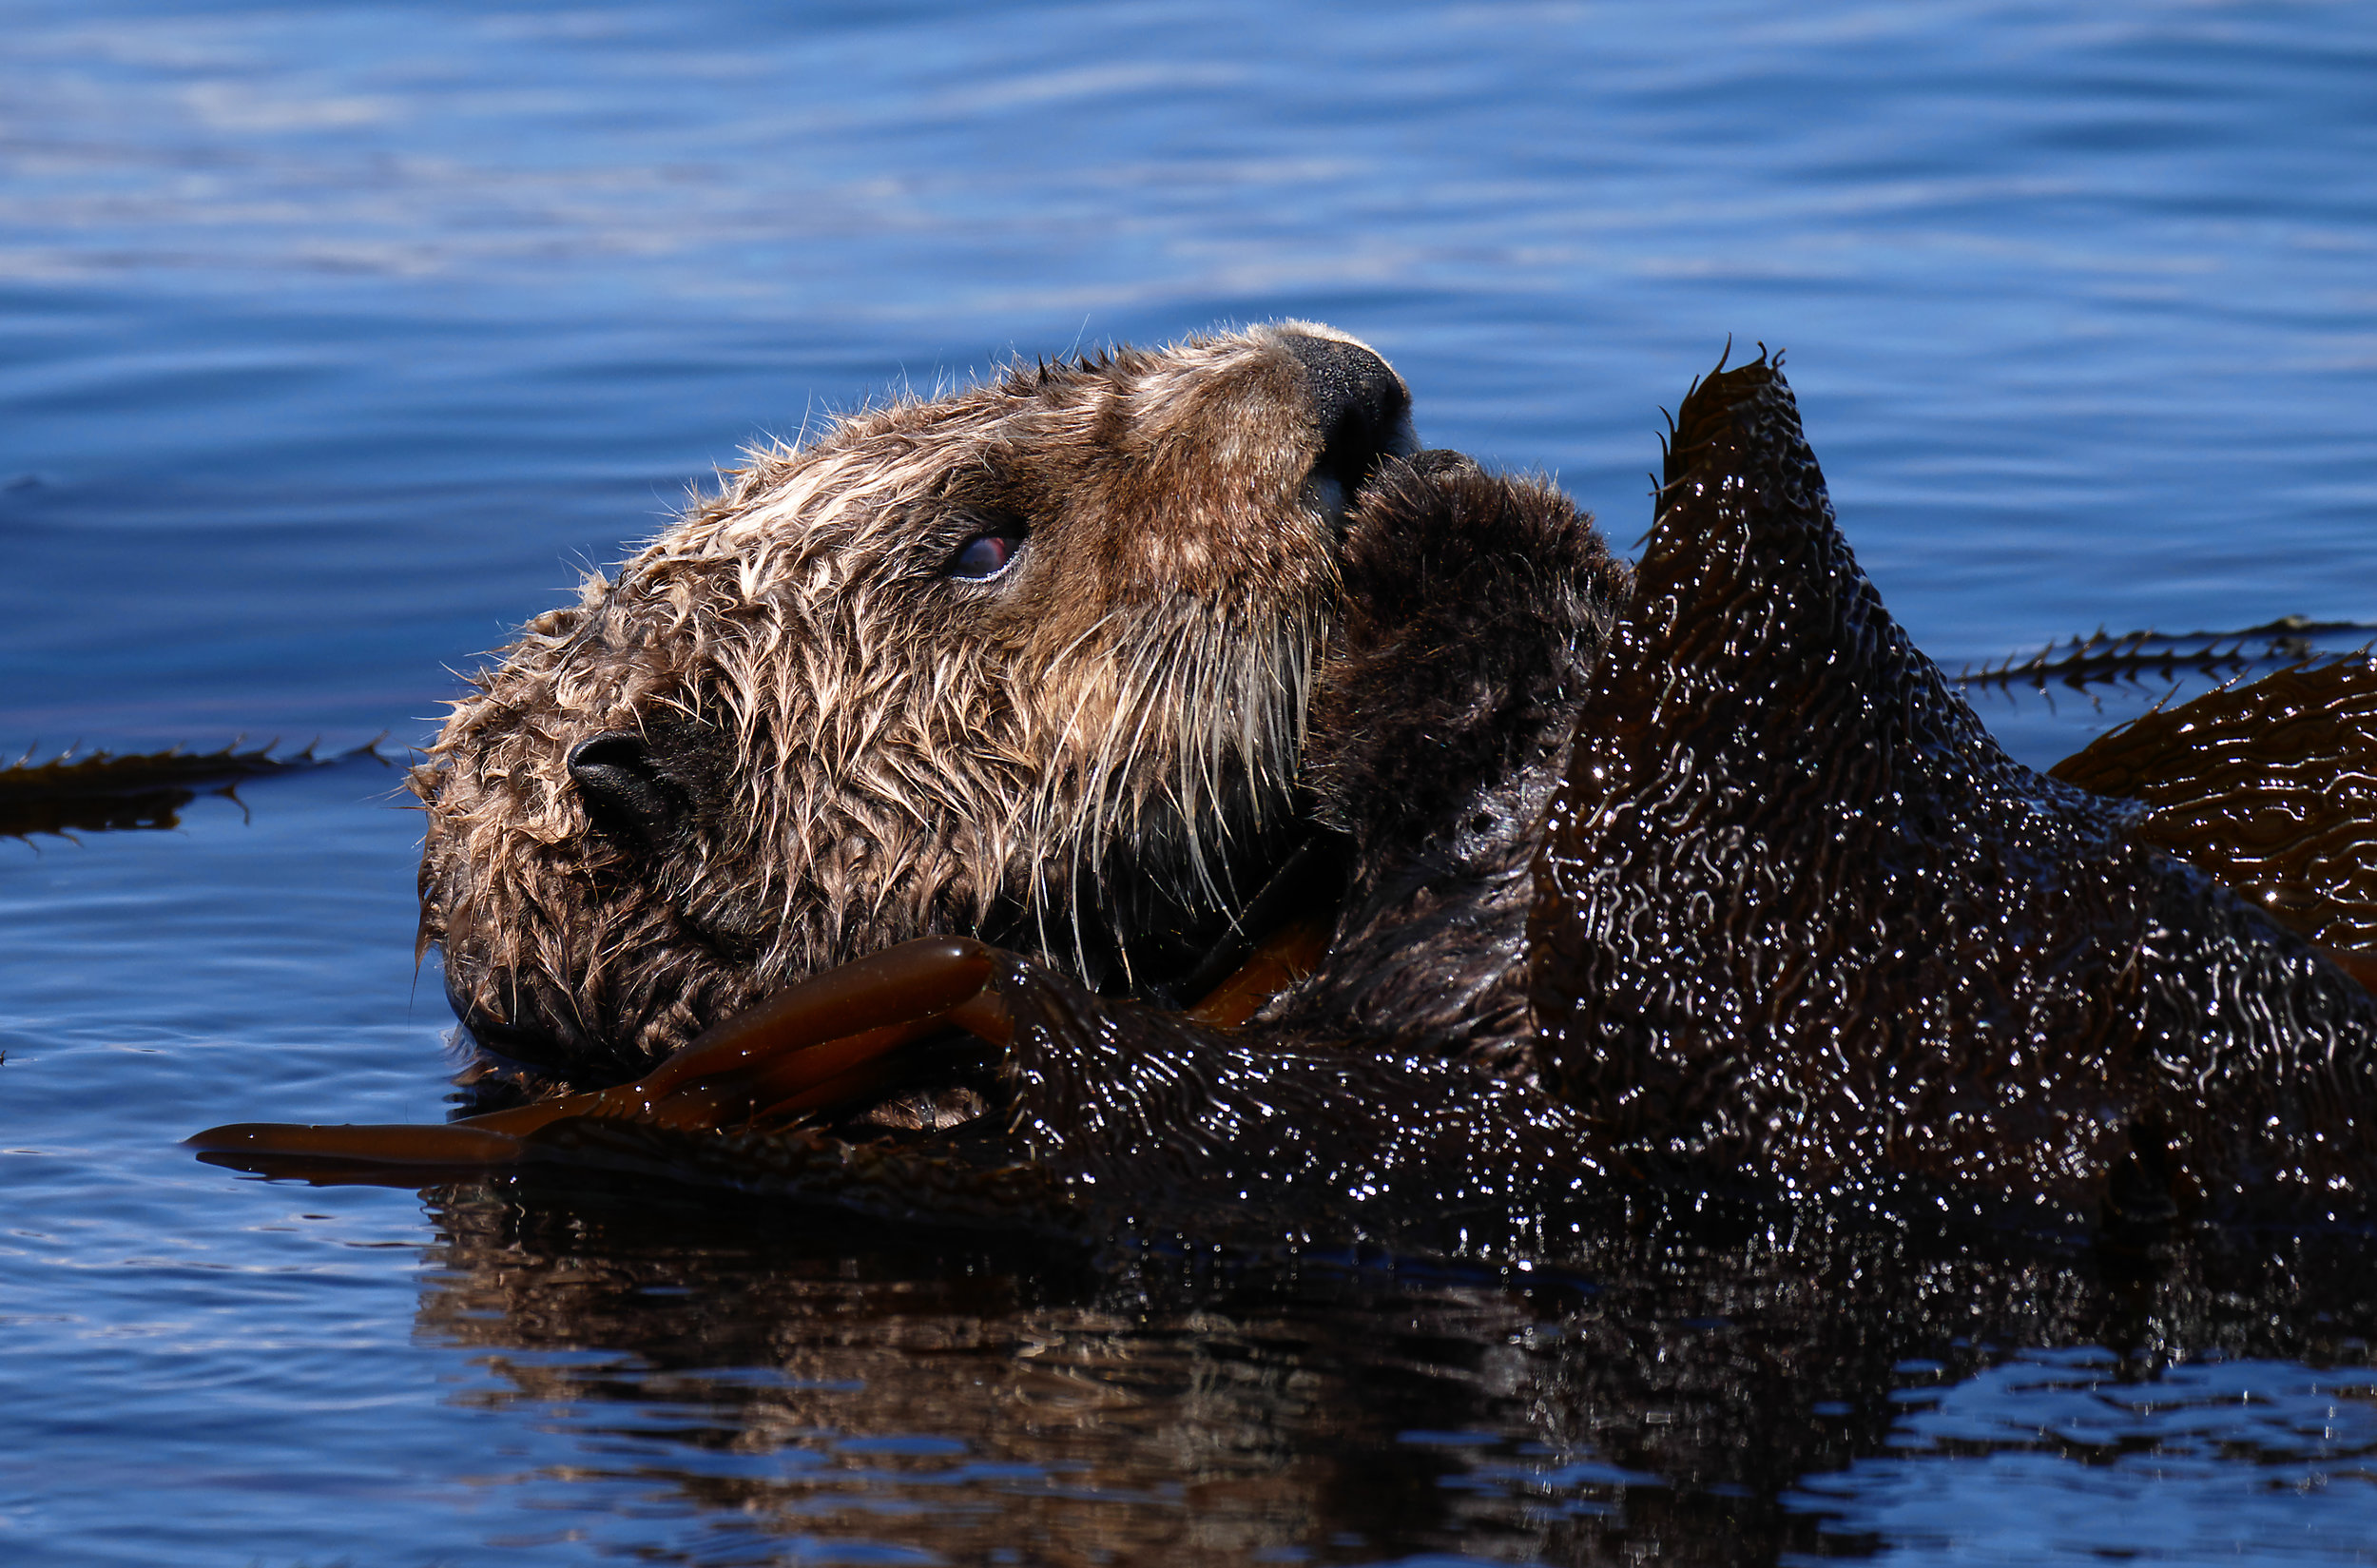 Sea otter photo tours